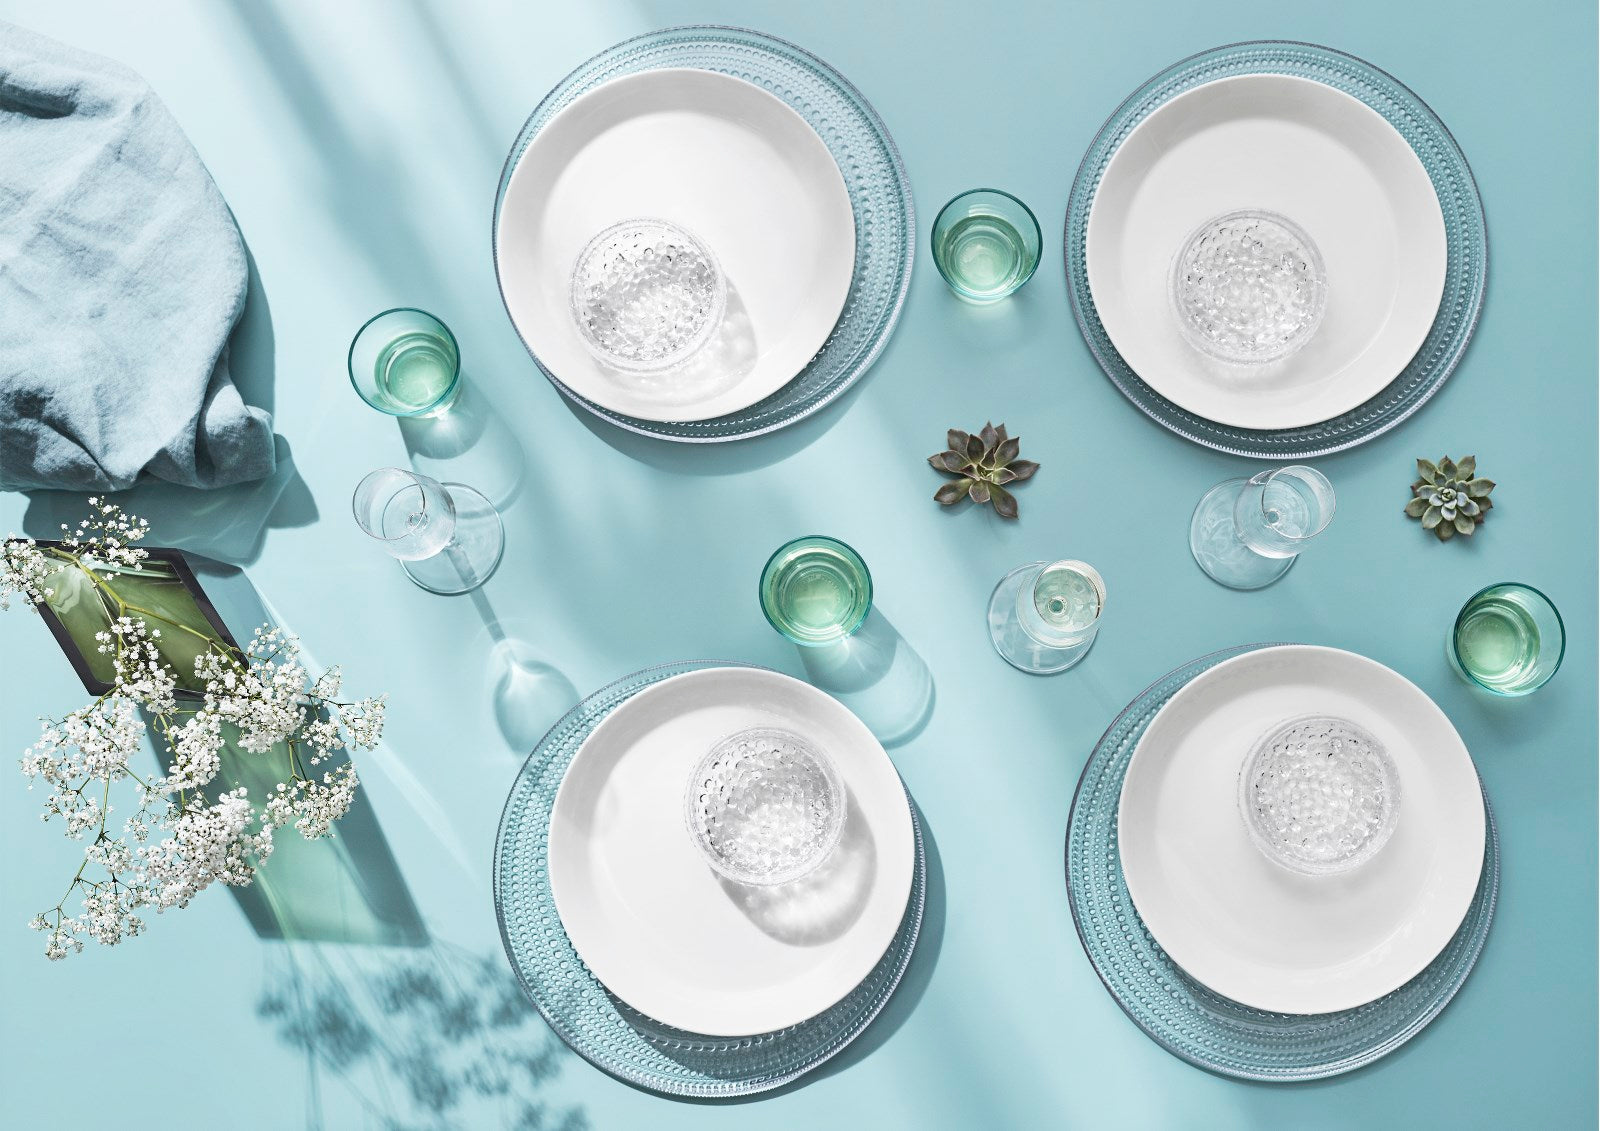 wedding gift iittala kastehelmi tableware